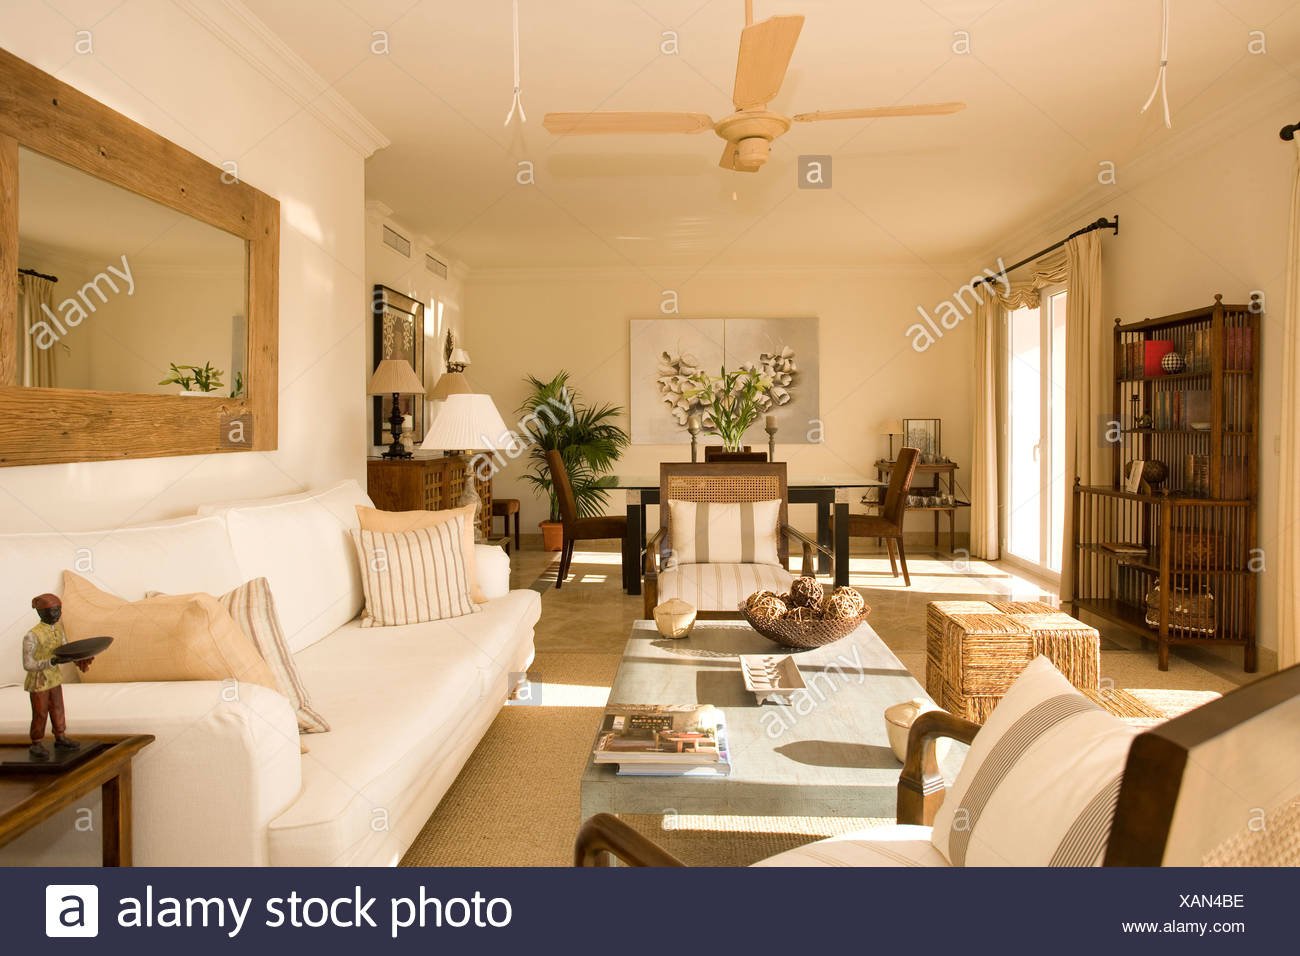 Large Wooden Mirror Above Cream Sofa In Modern Openplan Living And Dining Room With Ceiling Fan Stock Photo Alamy